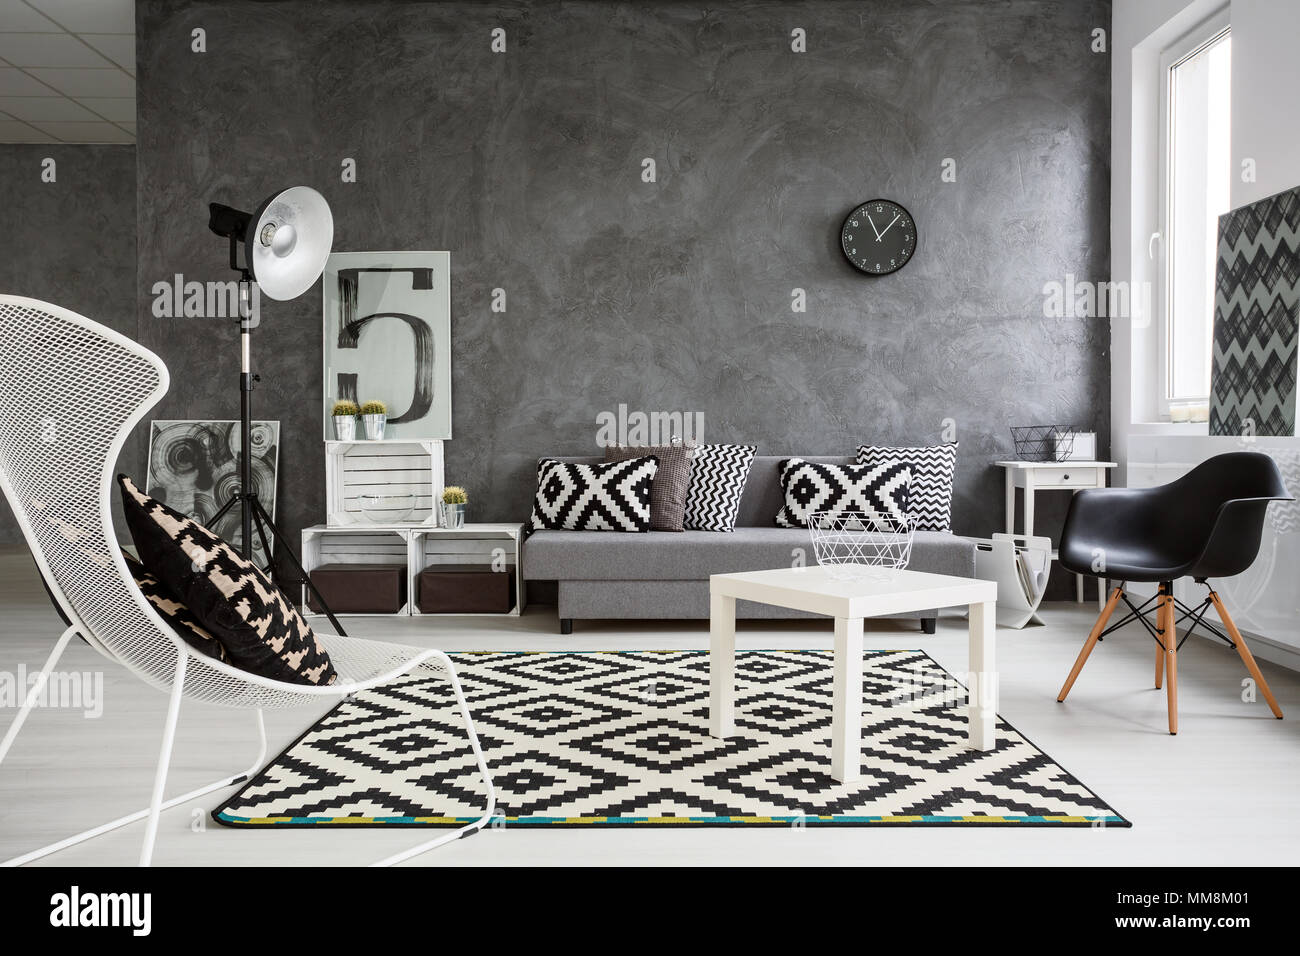 Spacious classic living room in black and white. Interior designed with style Stock Photo